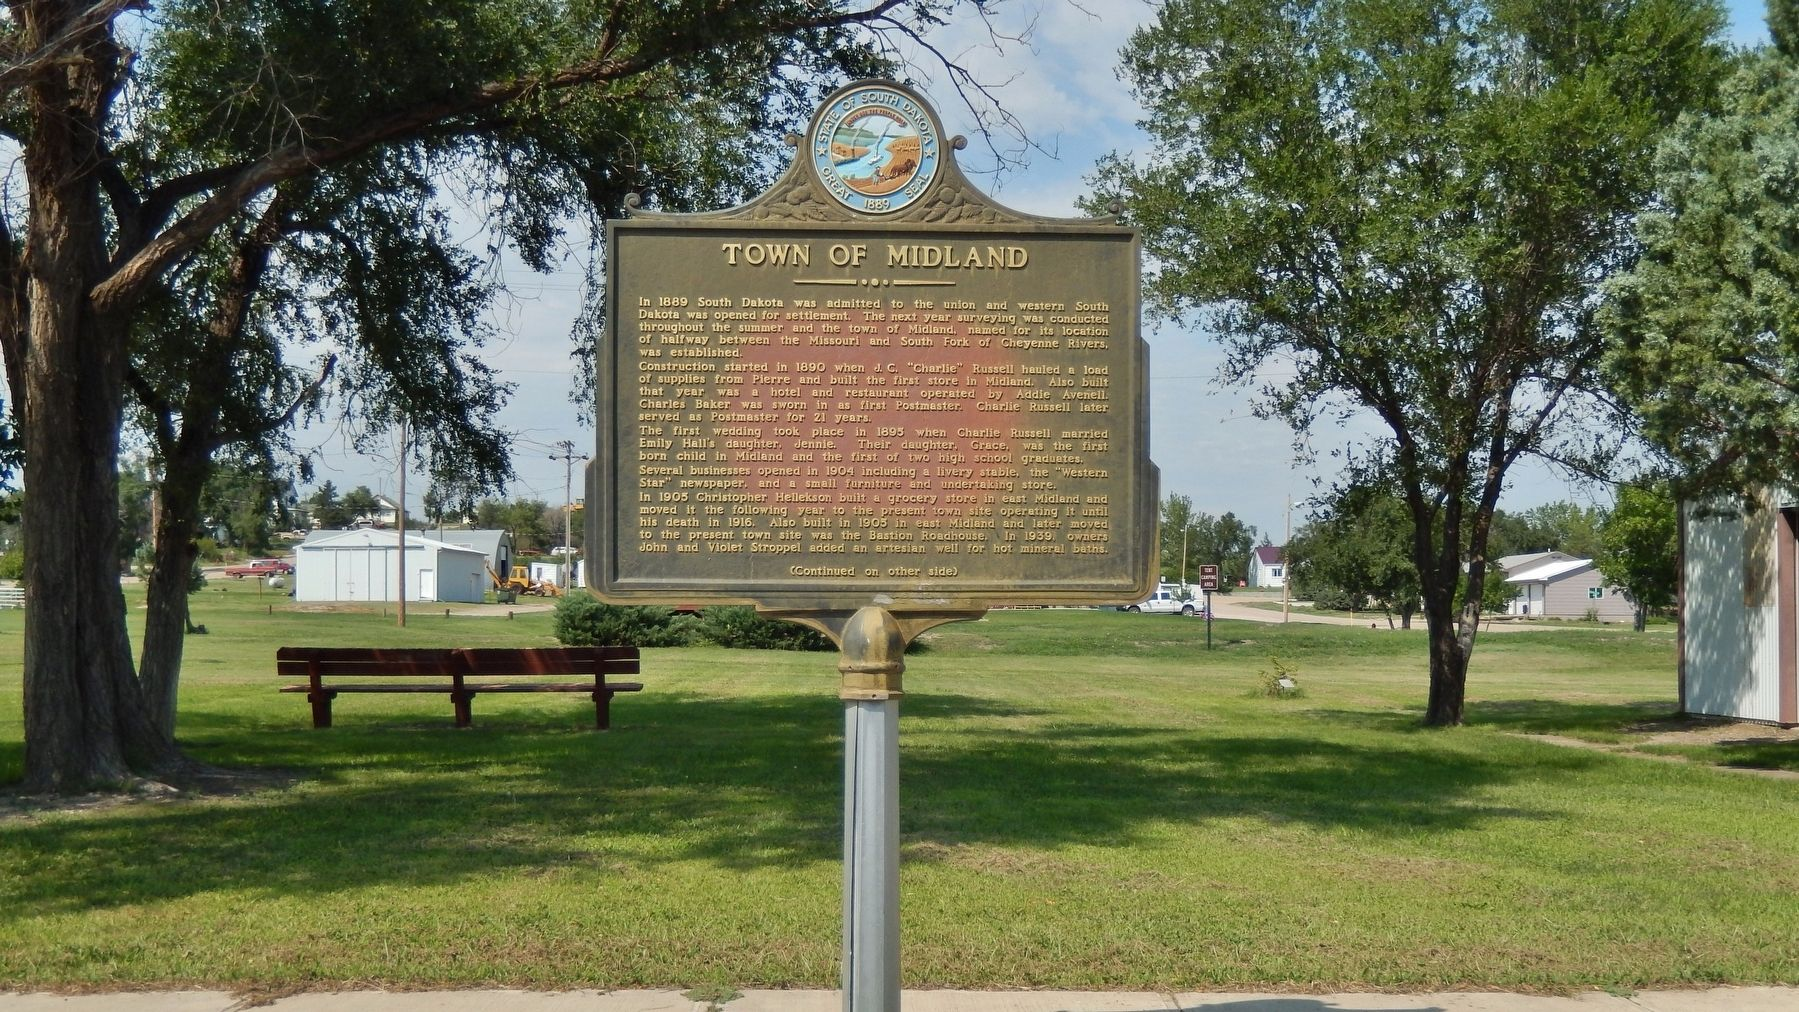 Town of Midland Marker (<i>wide view</i>) image. Click for full size.